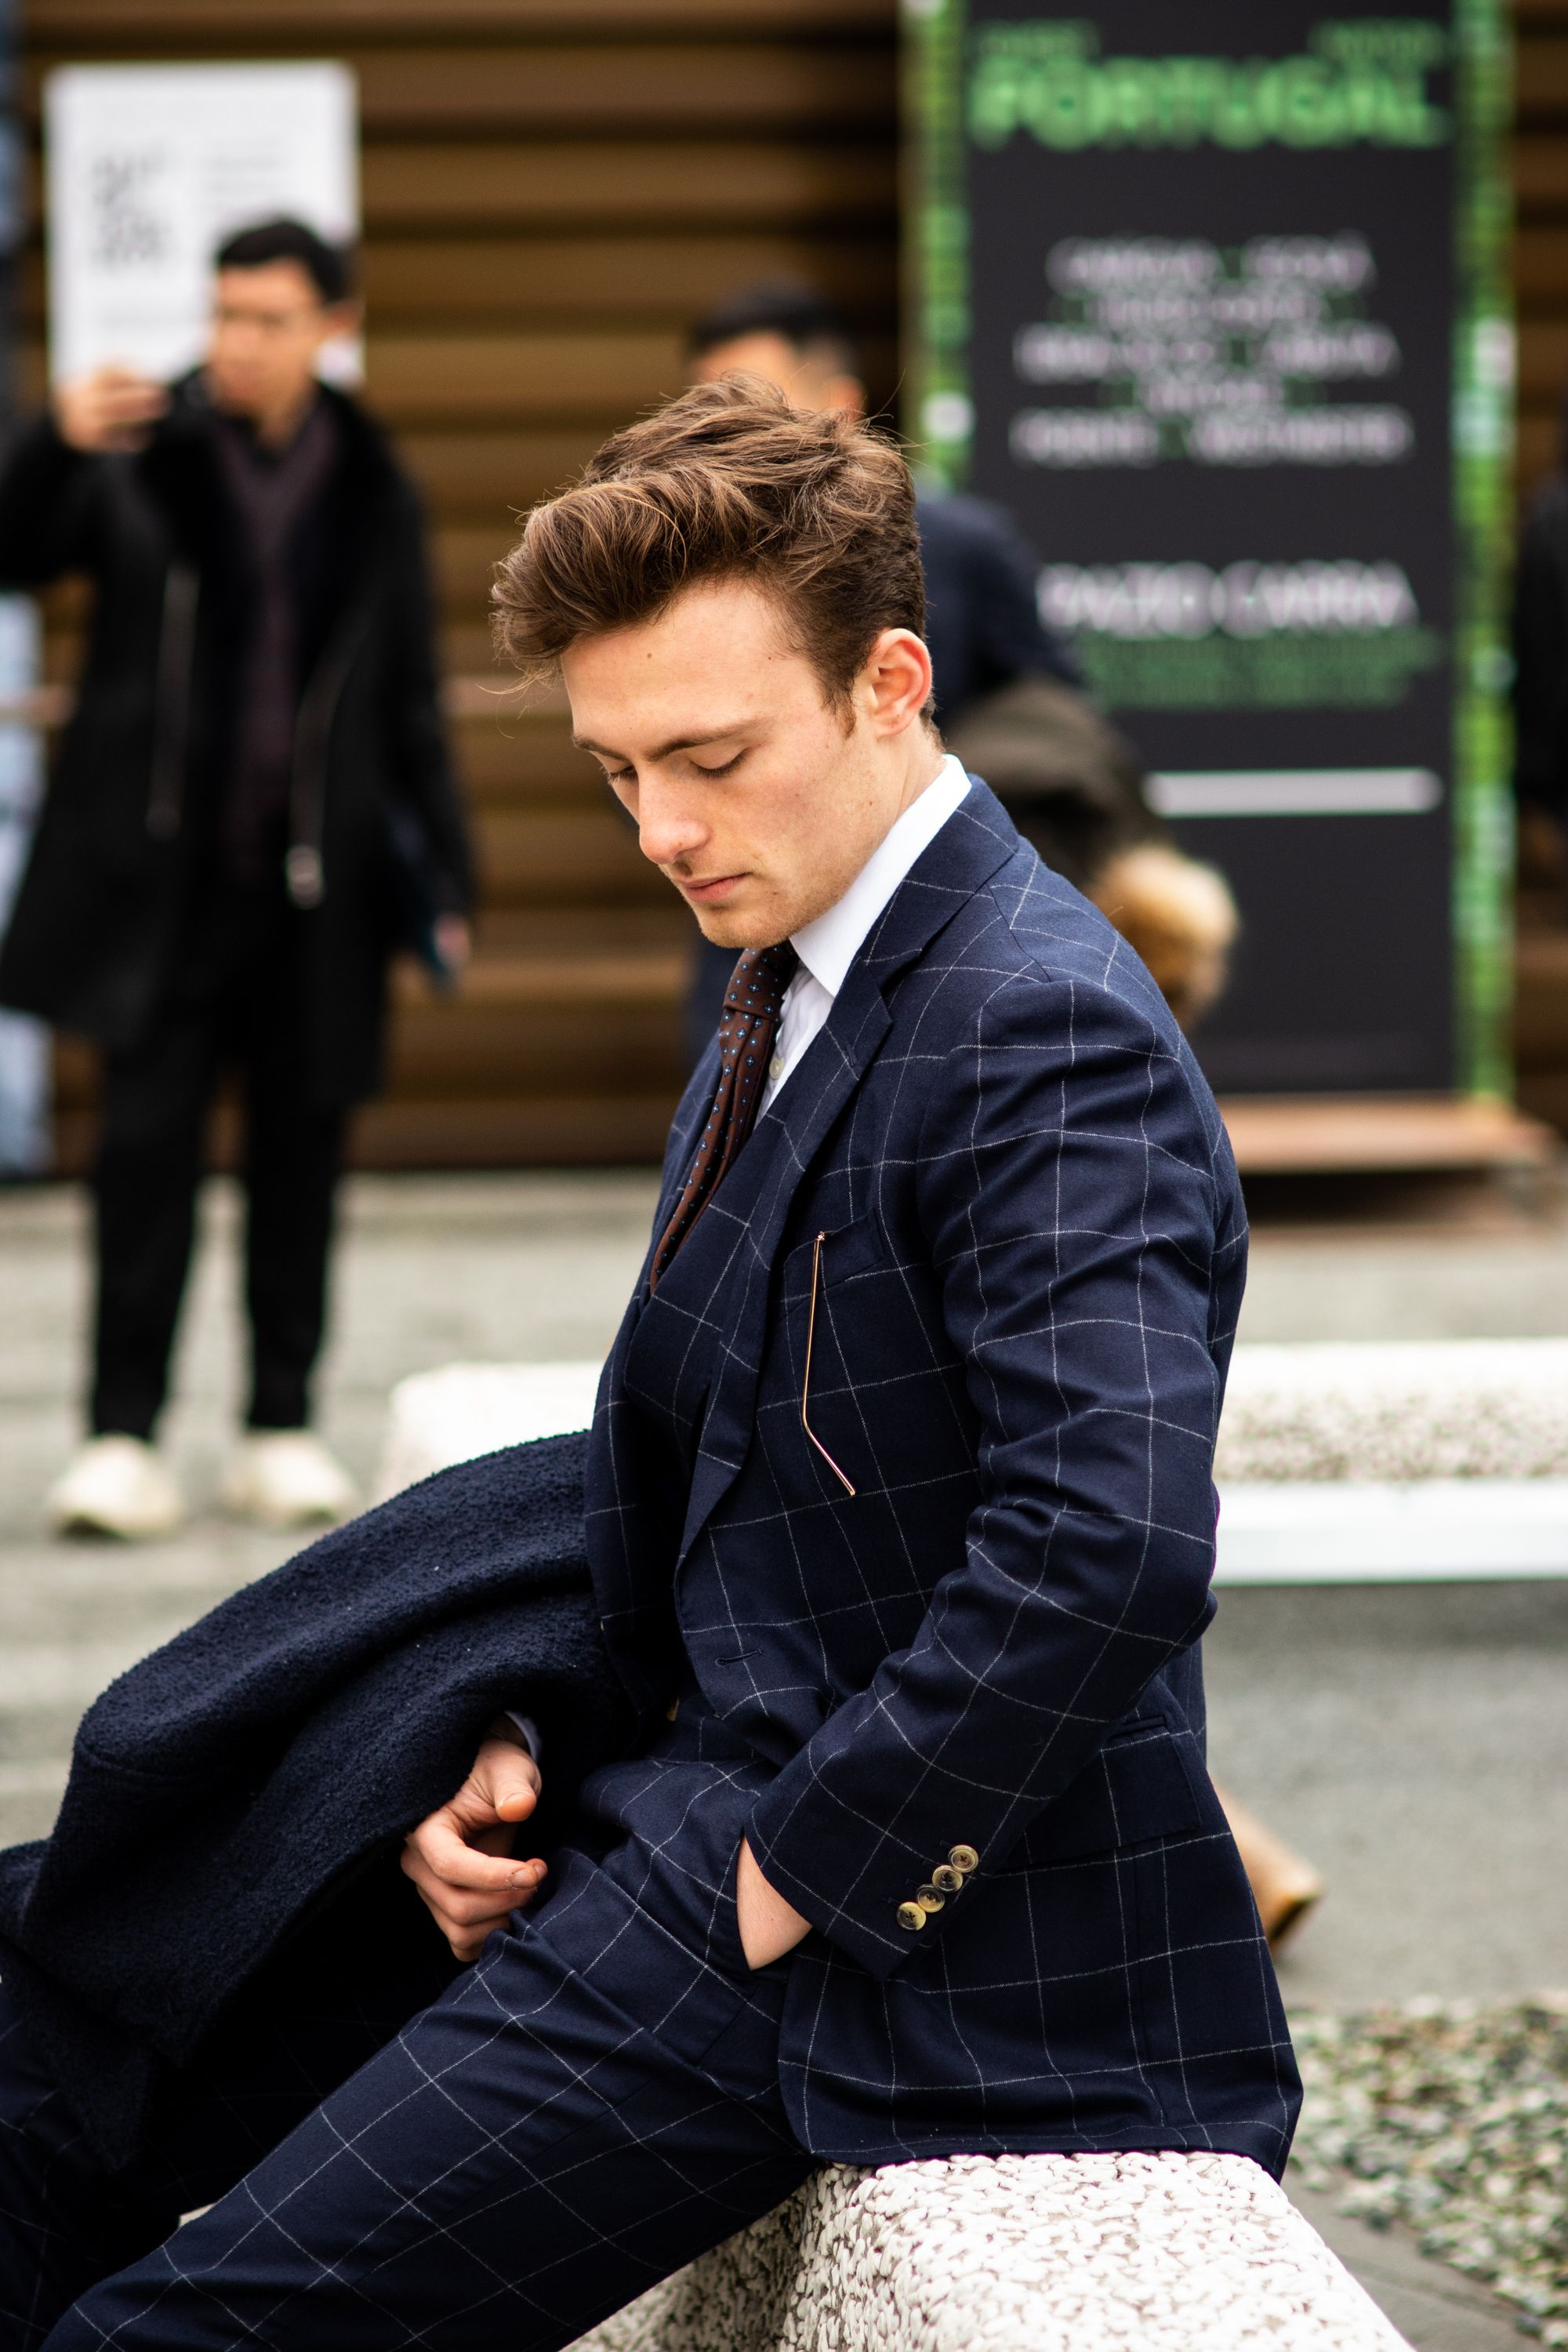 490ad591f01 Bespoke suits and separates from Savile Row tailor Cad & The Dandy, at  Pitti Uomo 95. Buy bespoke suits and separates from Cad & The Dandy in  London, New ...